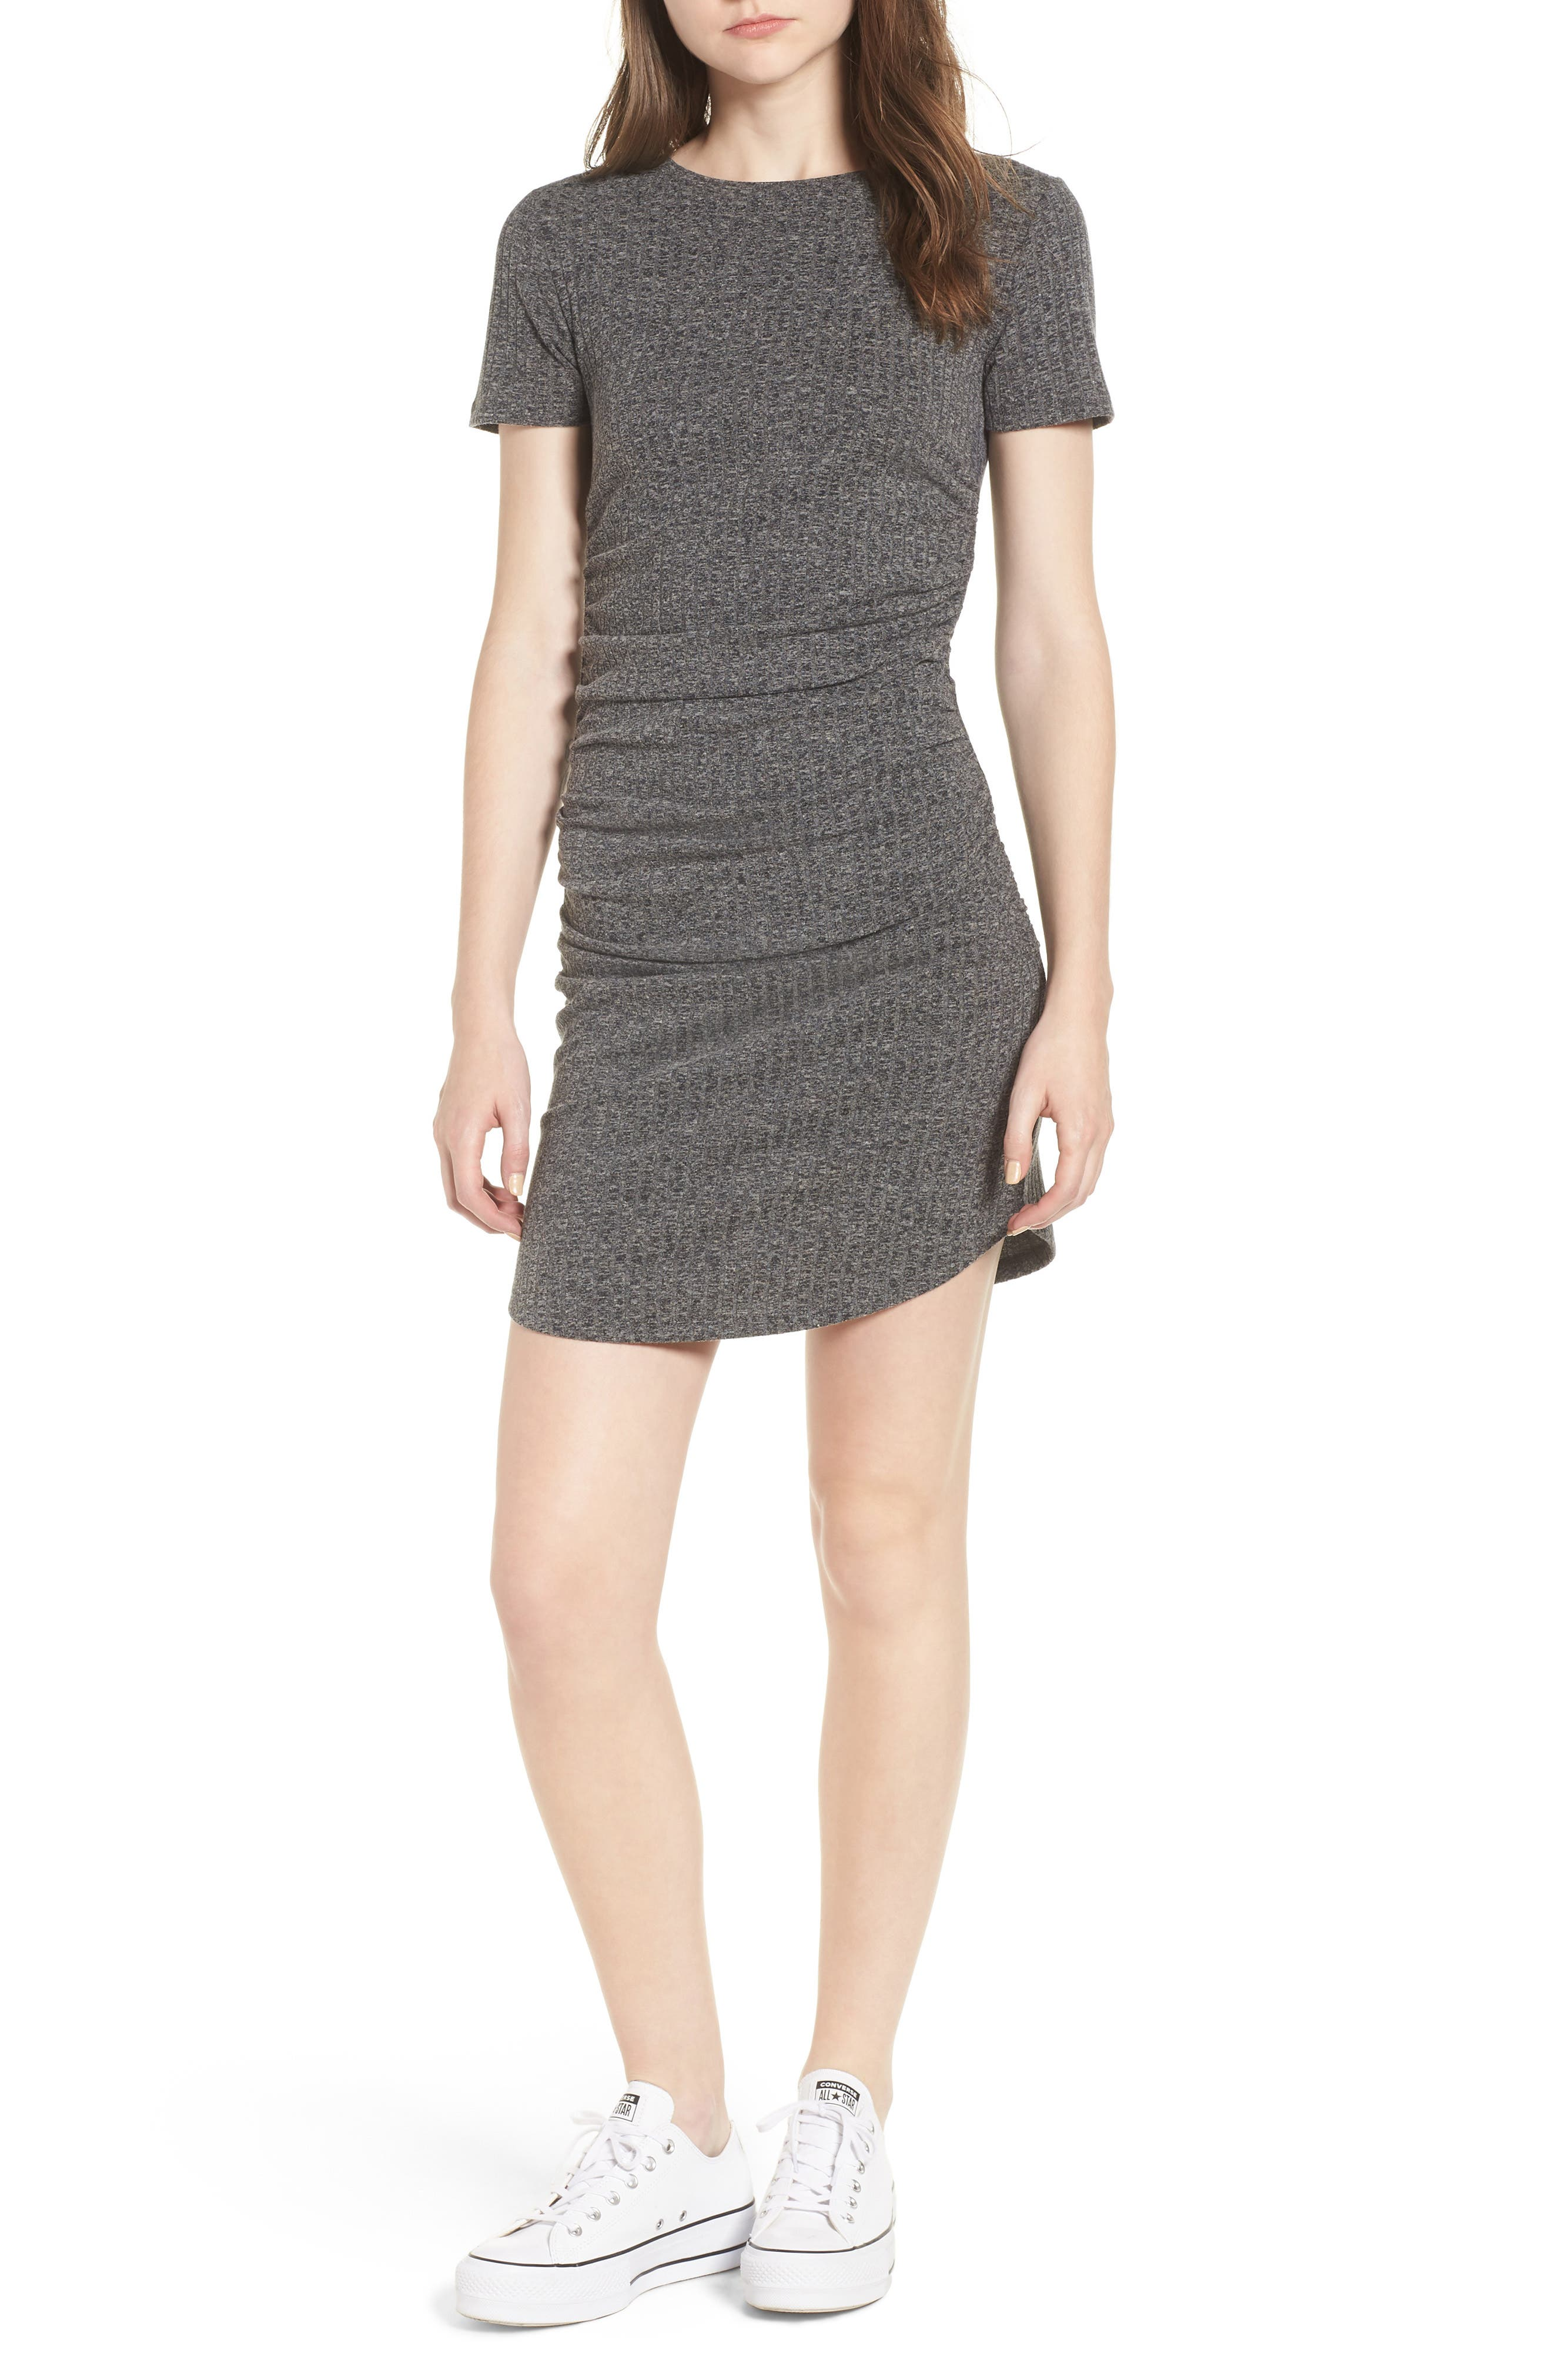 Ruched Ribbed Body-Con Dress,                             Main thumbnail 1, color,                             GREY MEDIUM CHARCOAL HEATHER